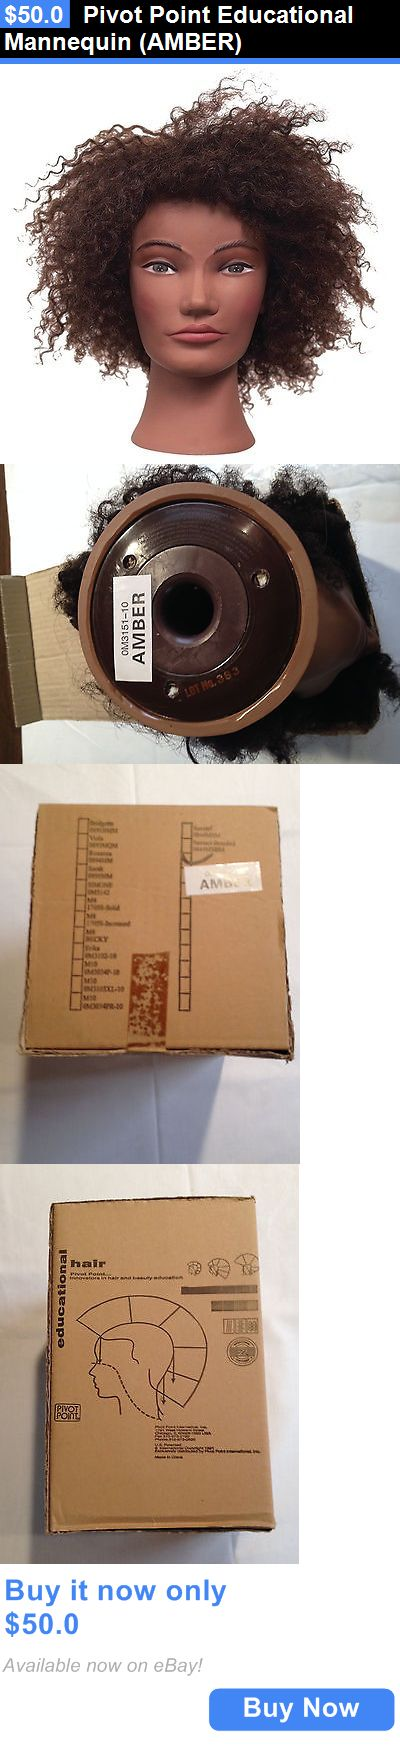 Hair and Makeup Mannequins: Pivot Point Educational Mannequin (Amber) BUY IT NOW ONLY: $50.0